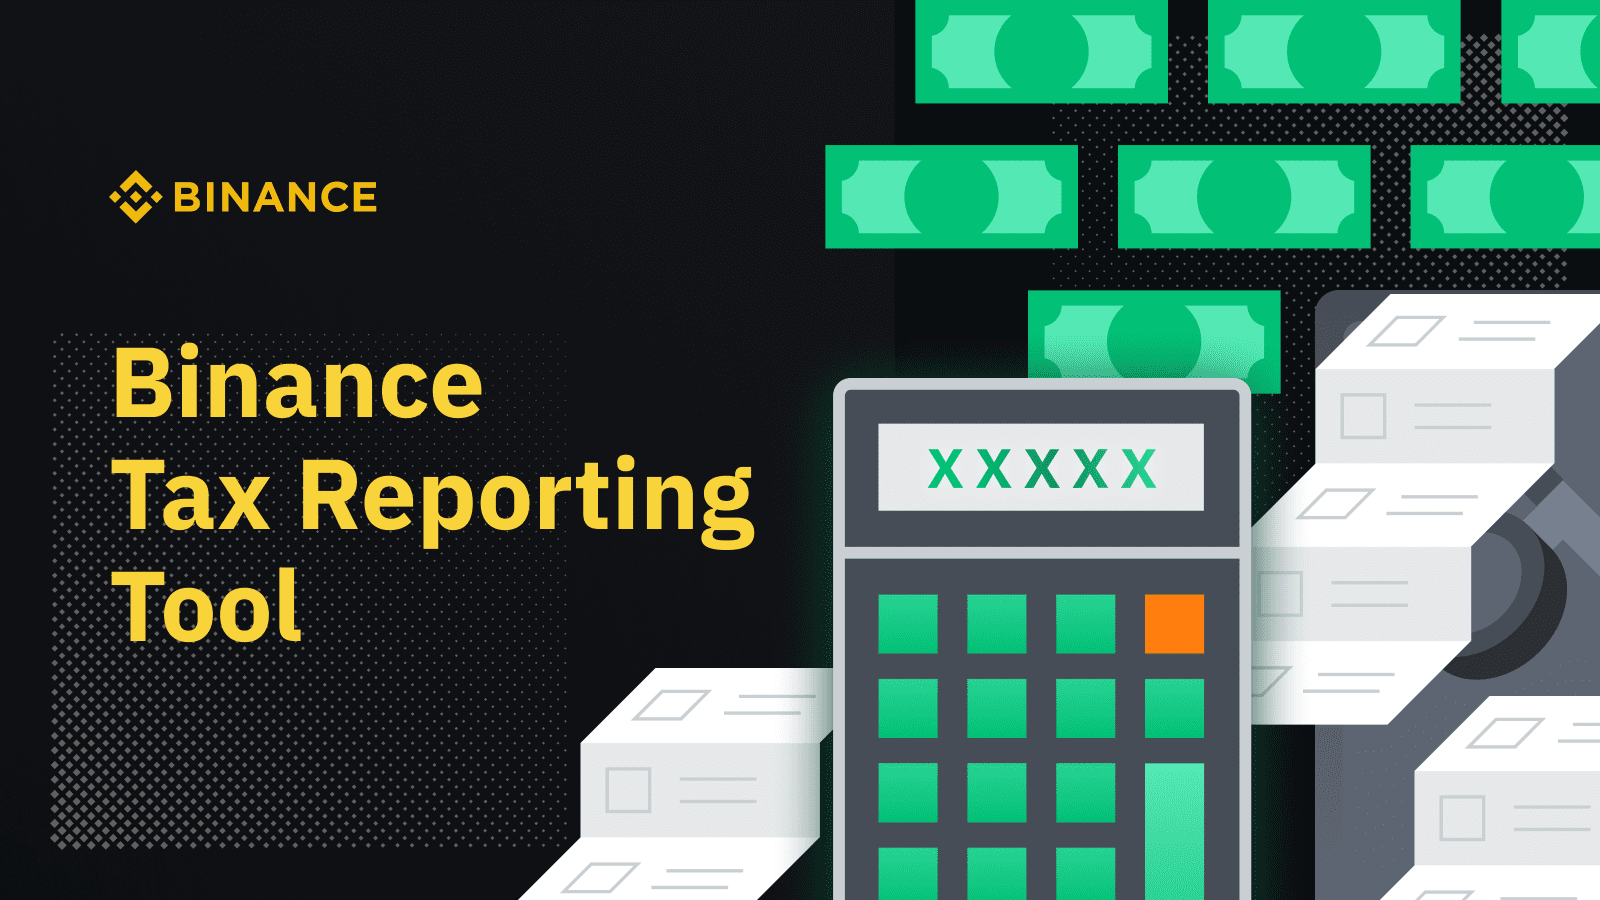 What You Need To Know About The Binance Tax Reporting ToolCryptocurrency Trading Signals, Strategies & Templates | DexStrats